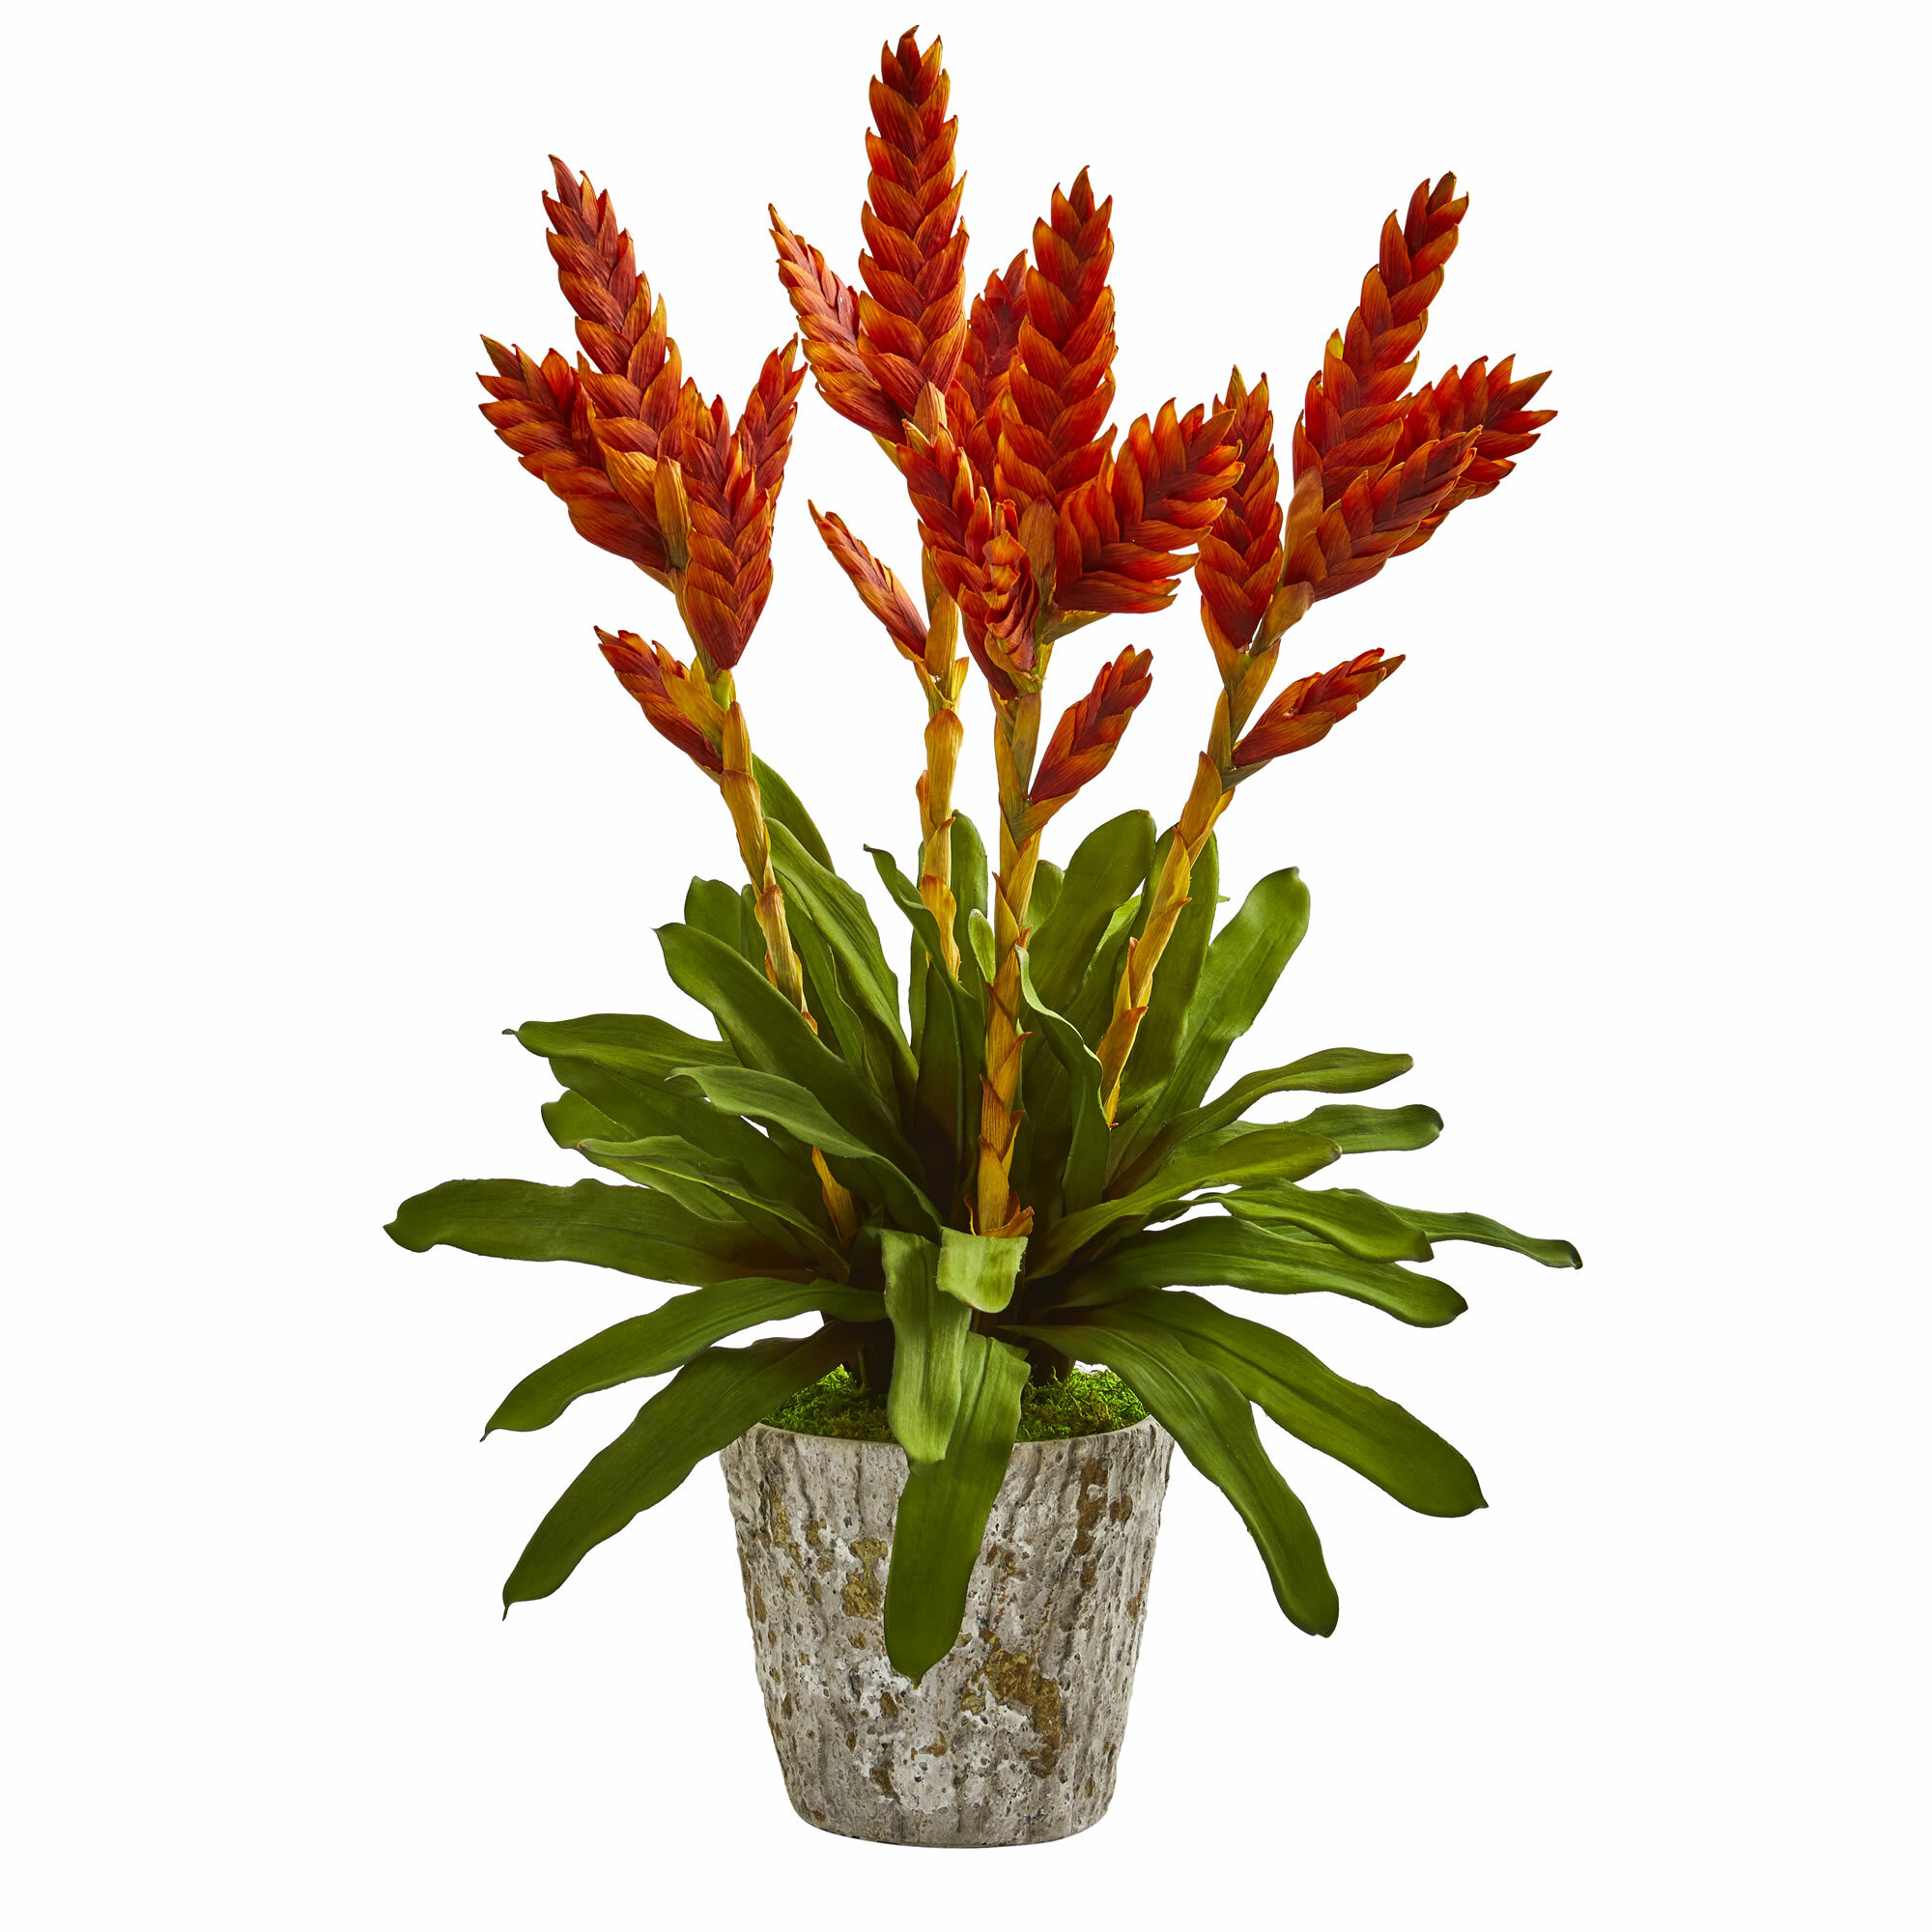 Bay Isle Home Artificial Tropical Bromeliad Floral Arrangement In Planter Wayfair